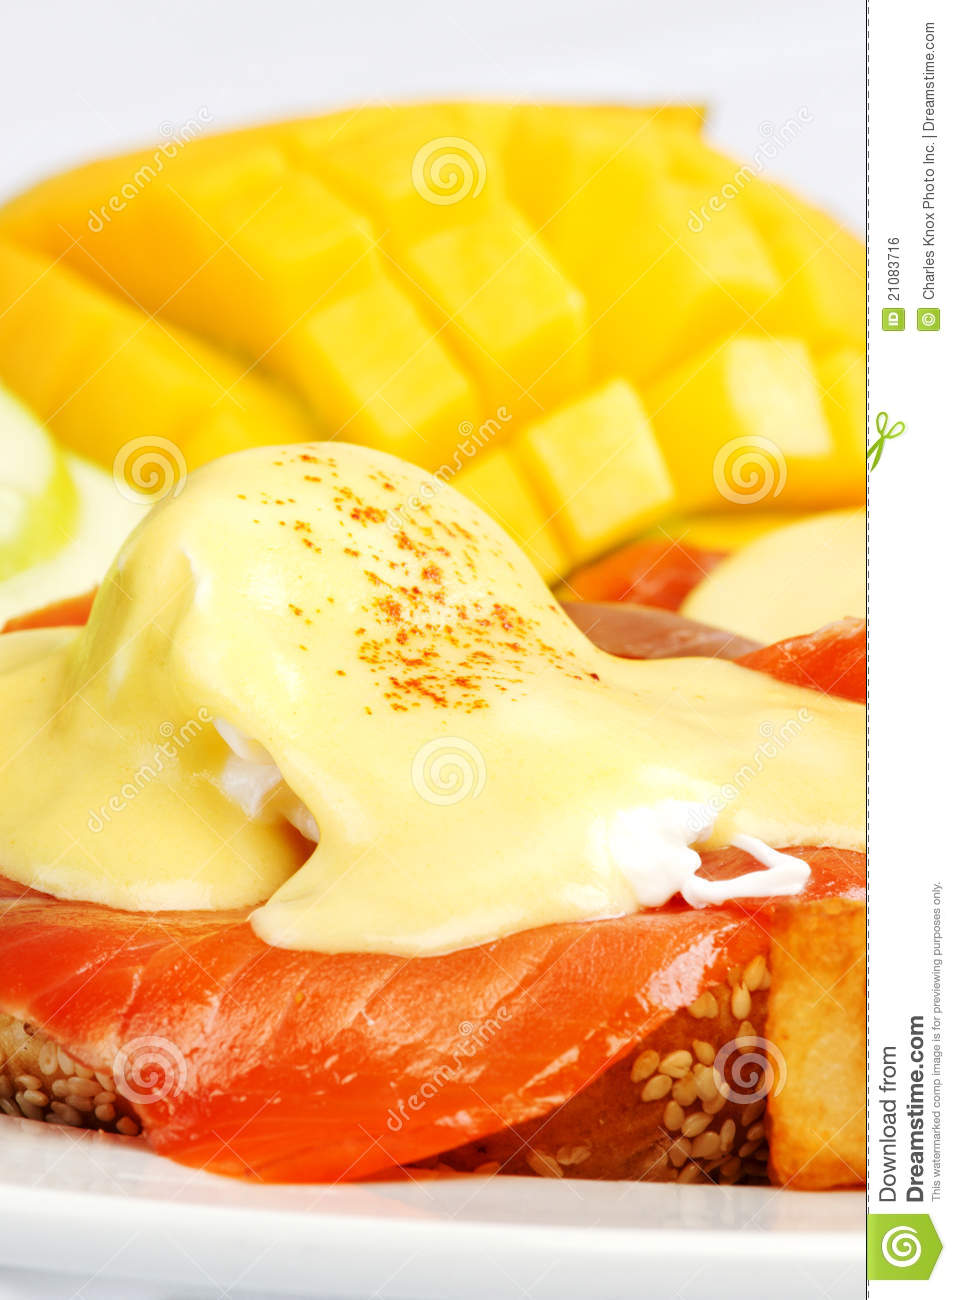 Smoked Salmon Eggs Benedict Royalty Free Stock Image - Image: 21083716